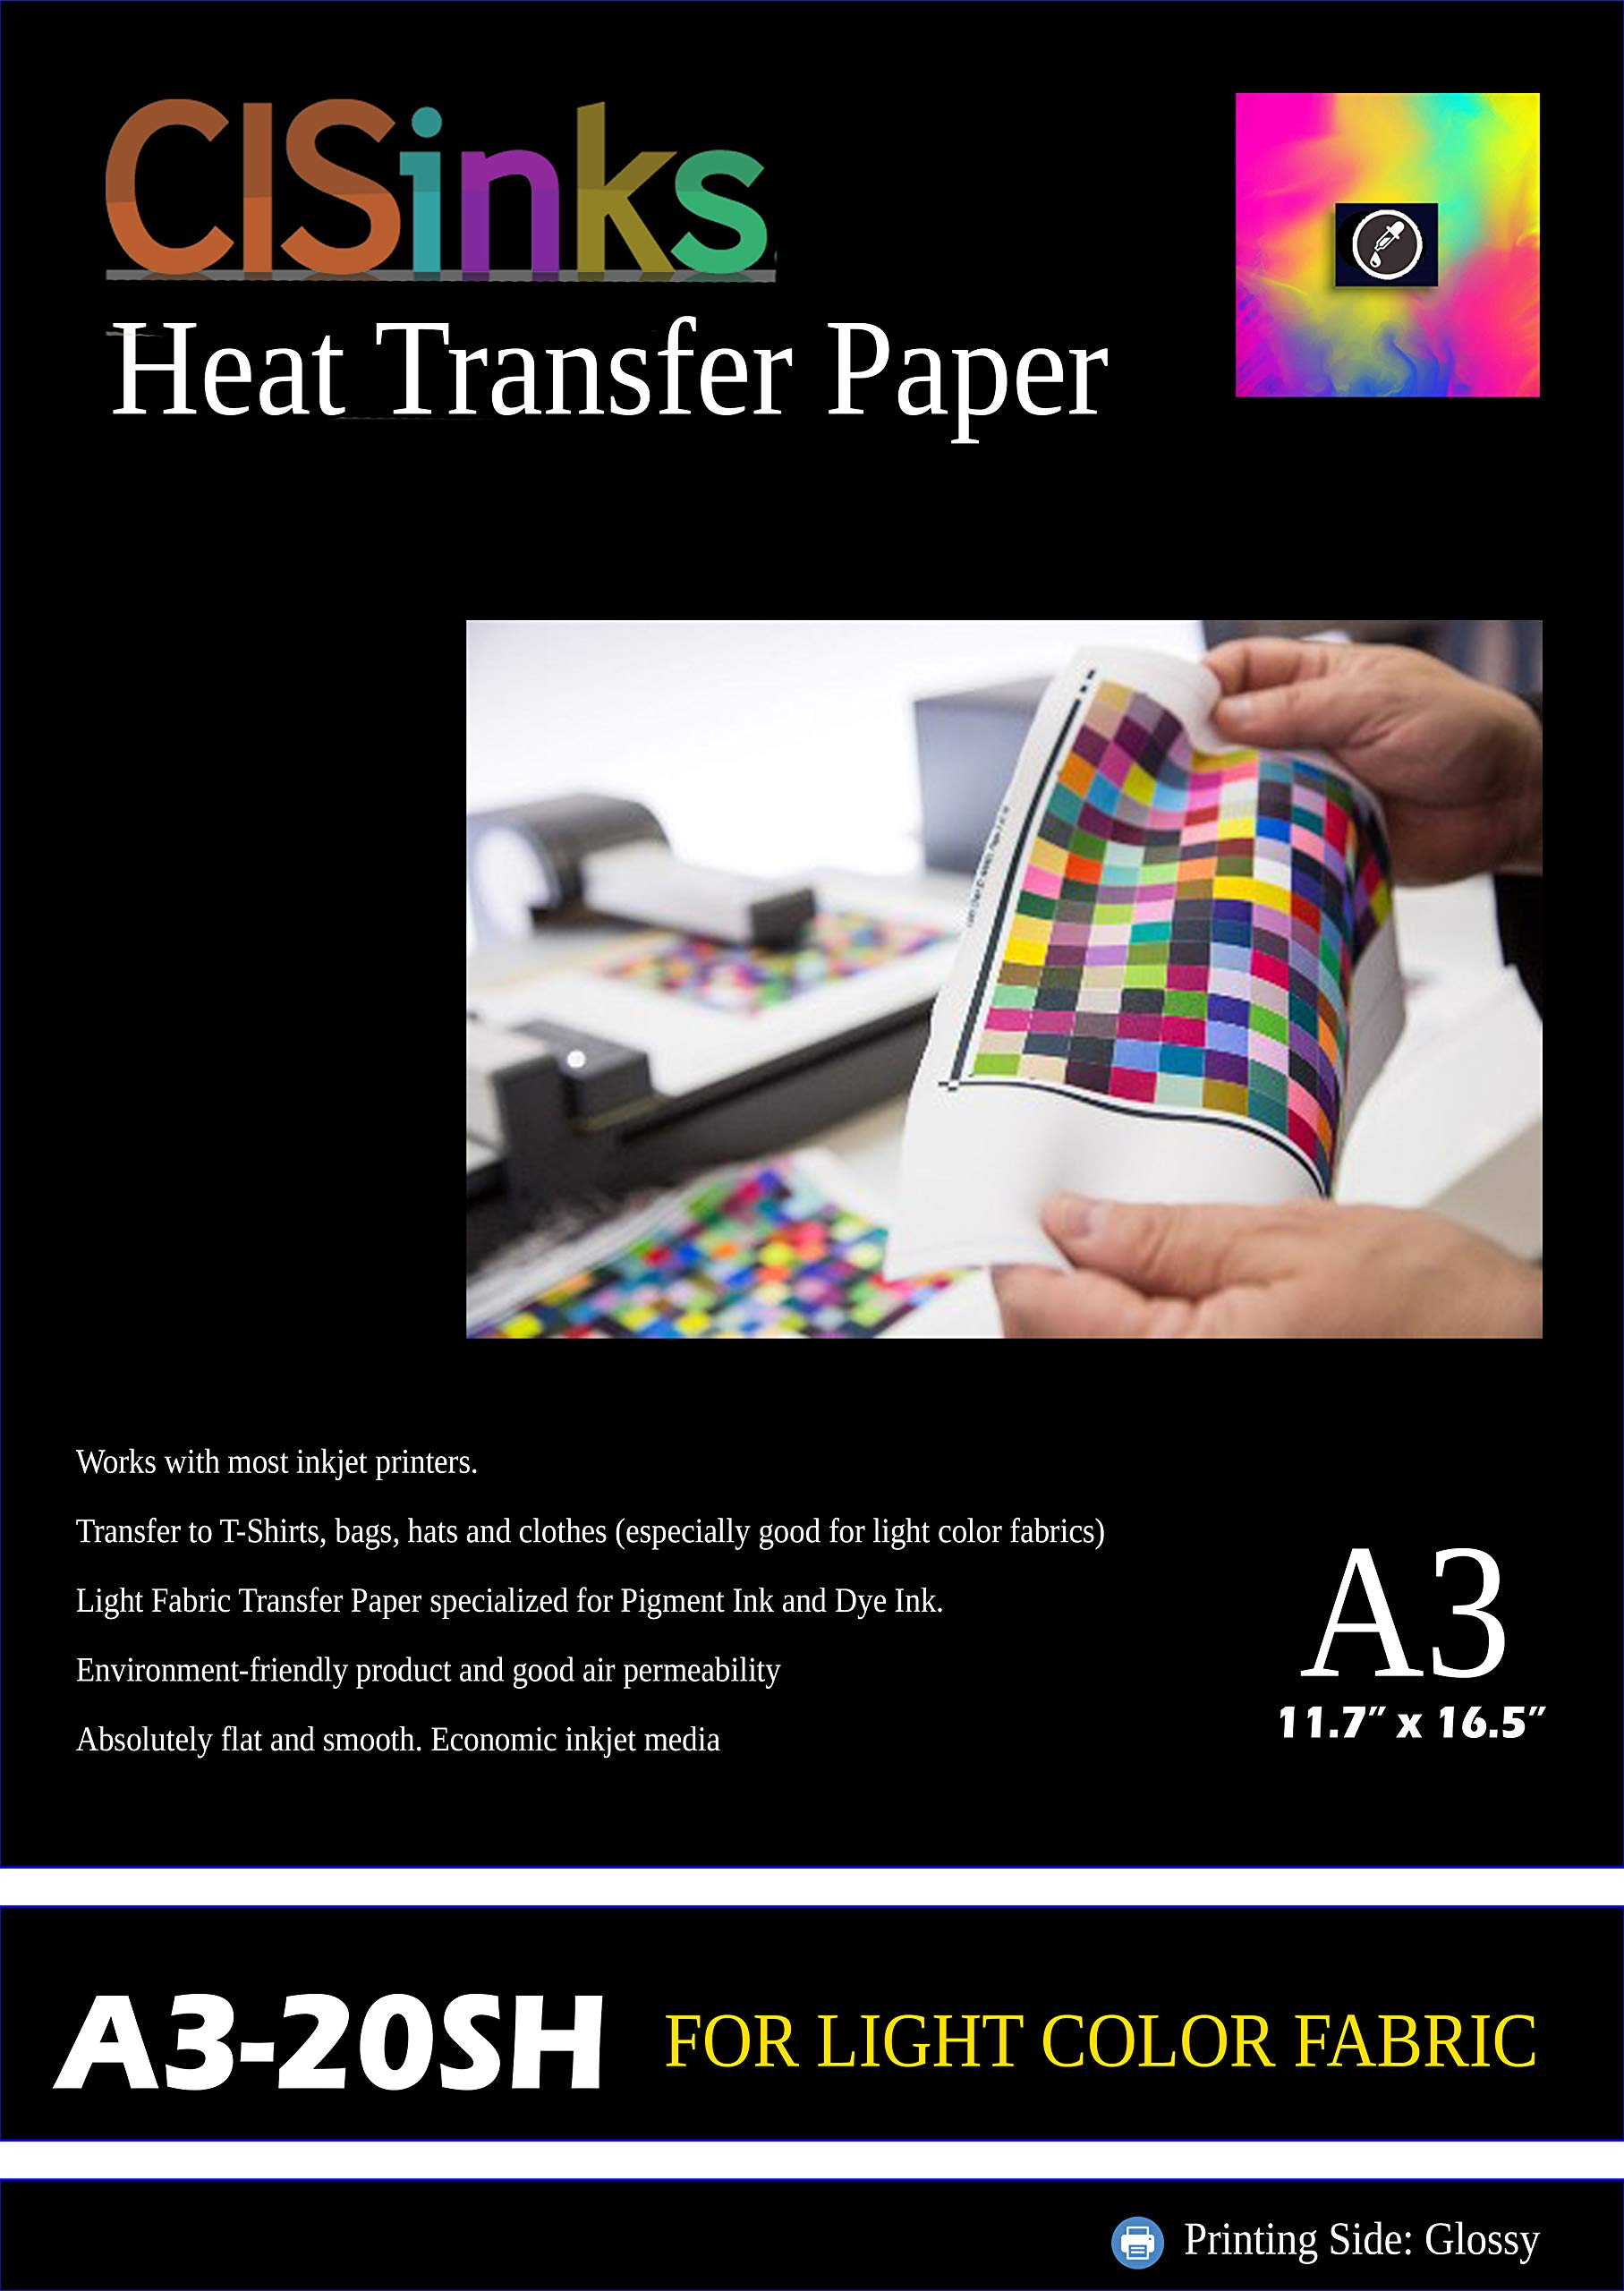 CISinks 20 Sheets Heat Transfer Paper A3 (12'' x 16.5'') for Light Color Fabrics by CIS Inks